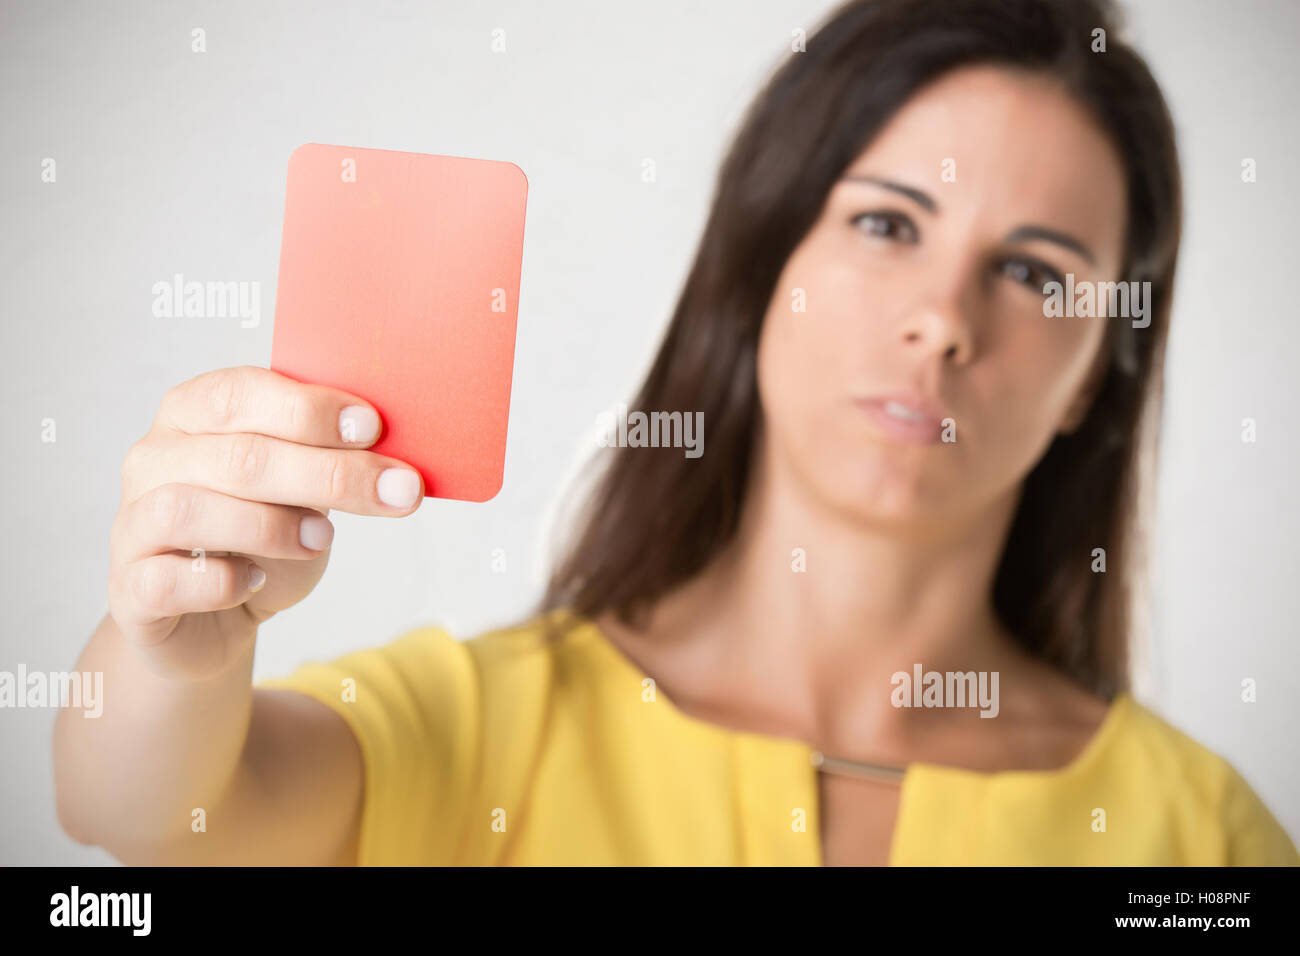 Woman showing a red card. Concept of relationship problems. - Stock Image